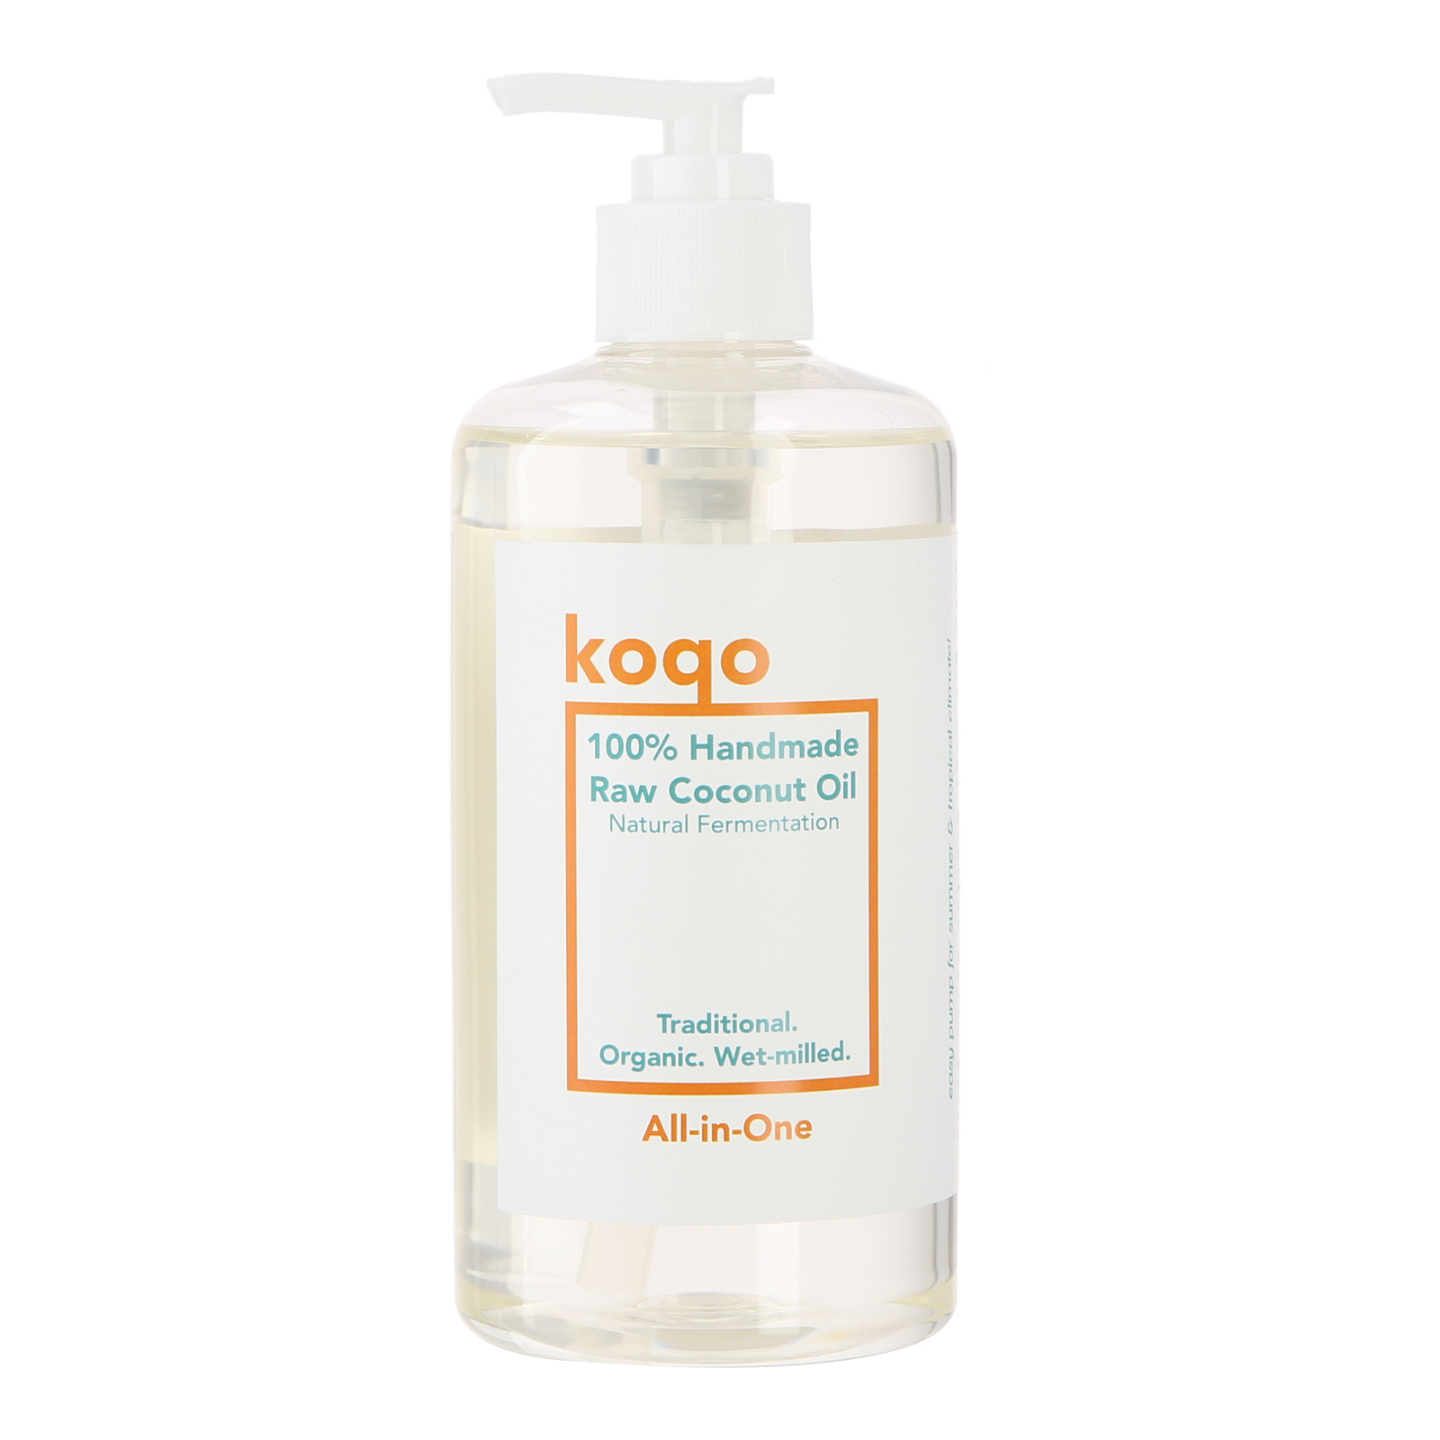 koqo All-In-One 100 Pure Handmade Virgin Coconut Oil 500ml - Best Value